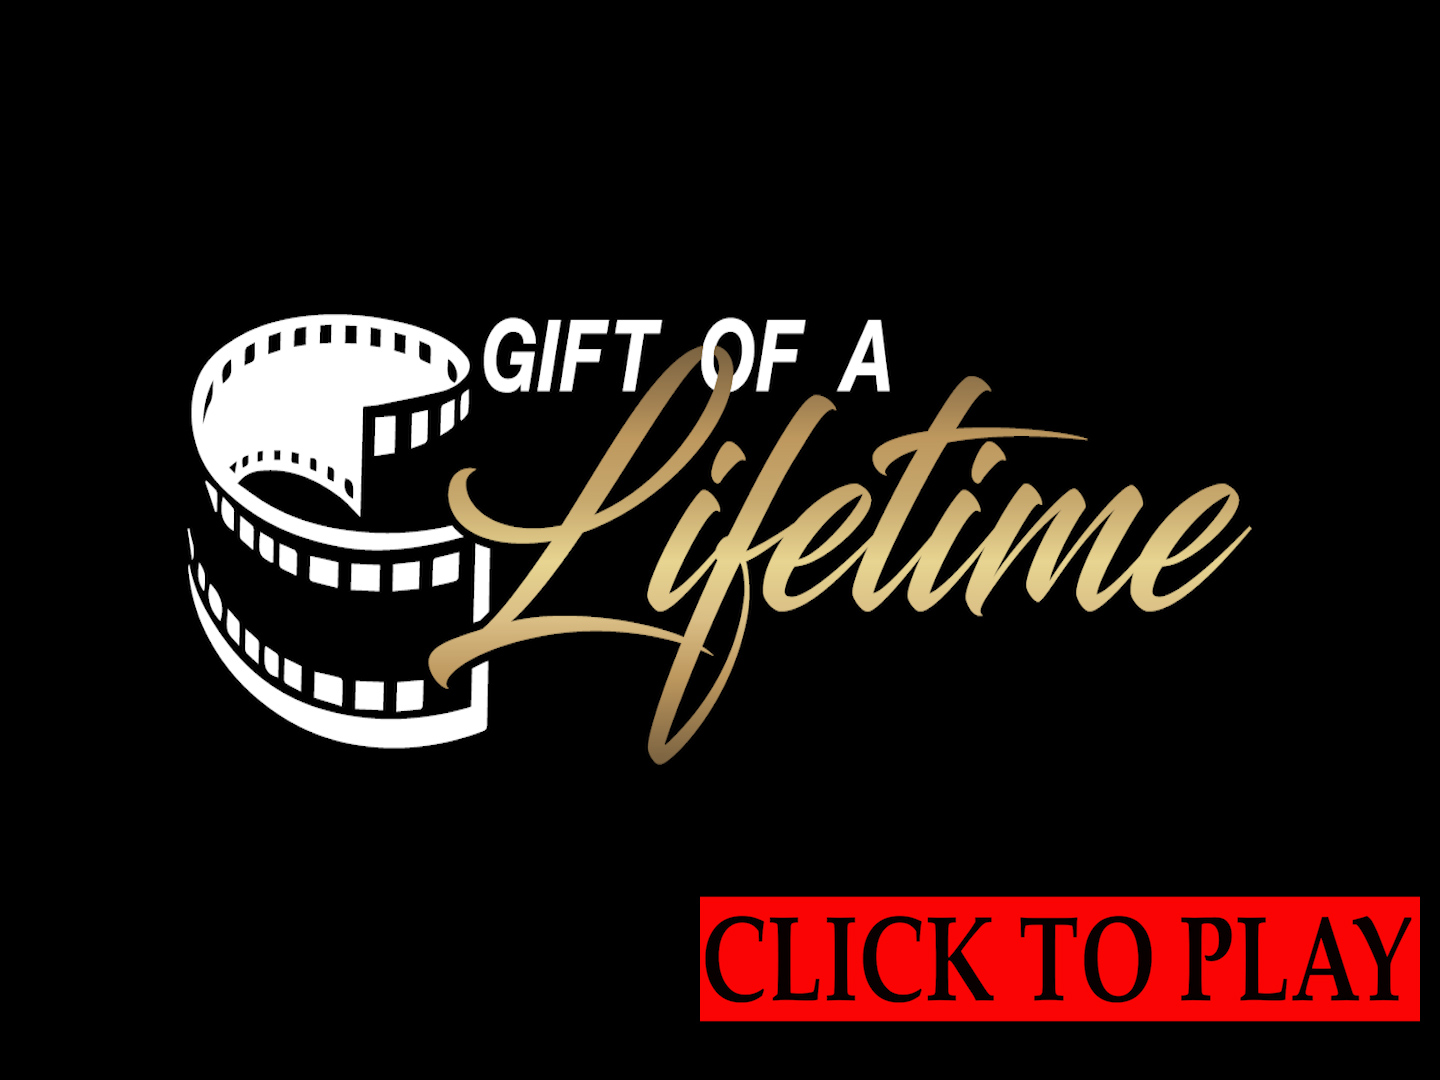 GIFT OF A LIFETIME - AN INTRODUCTION